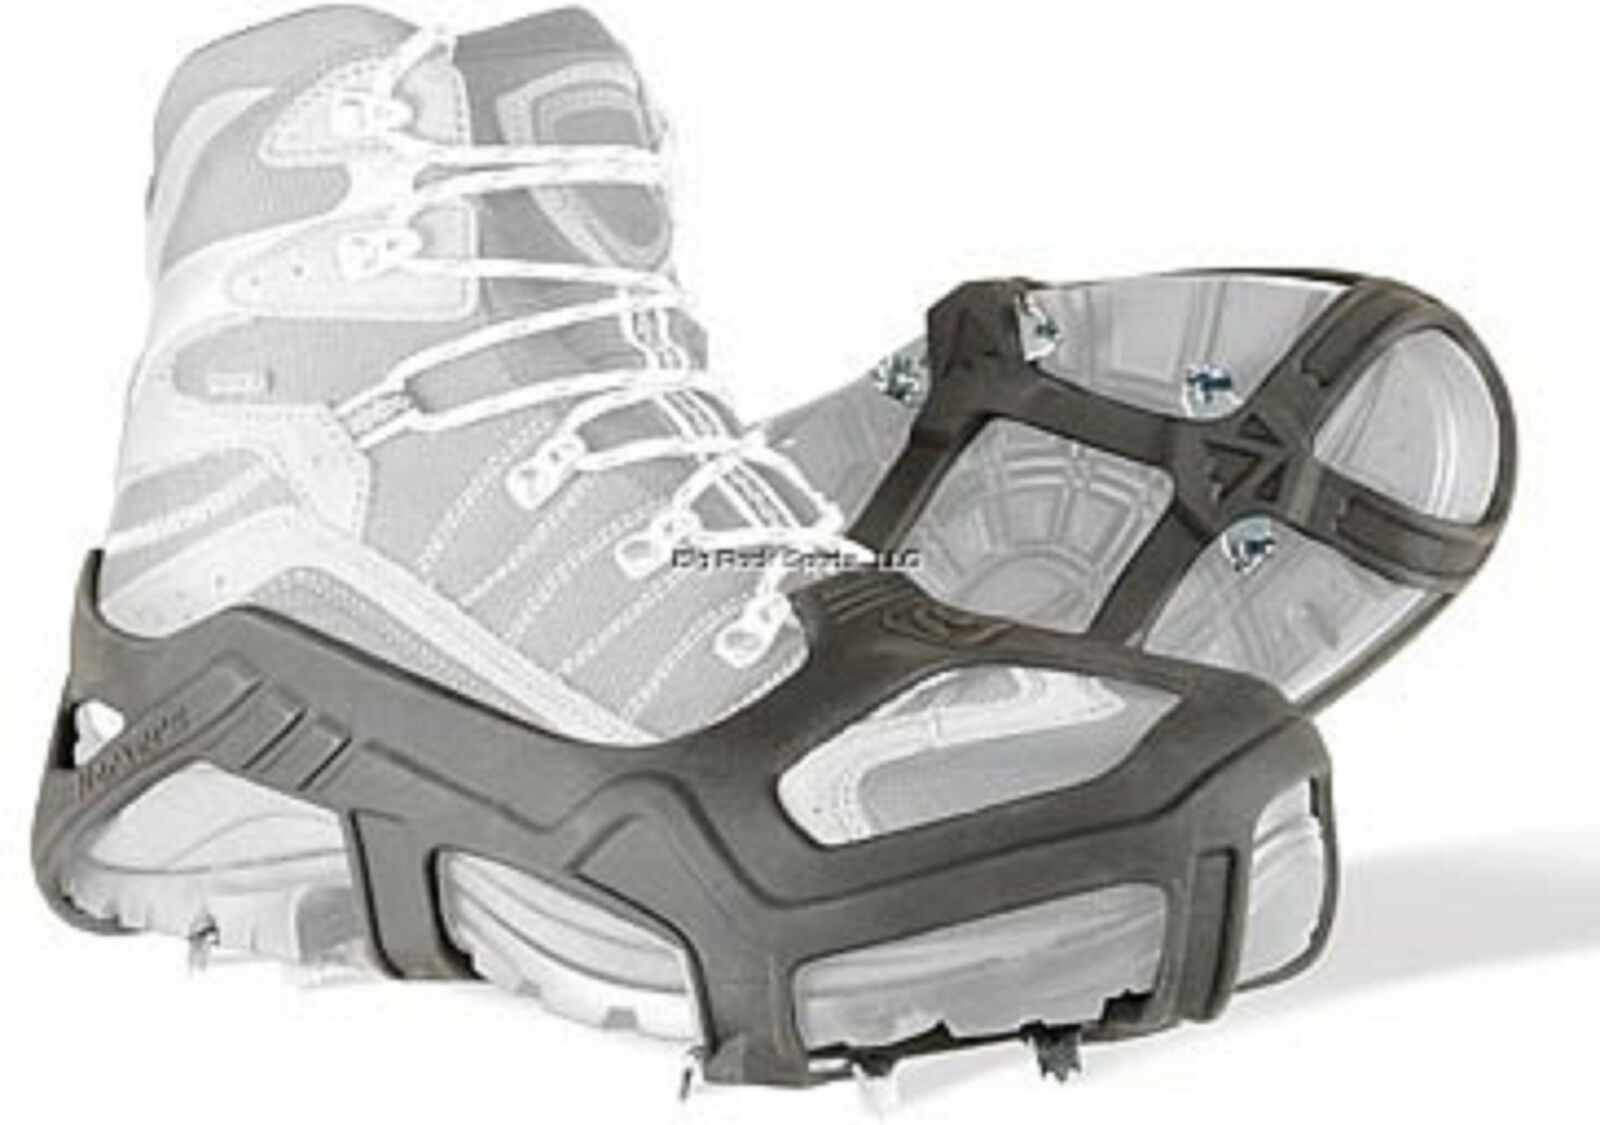 NEW Korkers Apex Ice Fishing Cleats XX-Large  OA8500-XXL  factory outlets